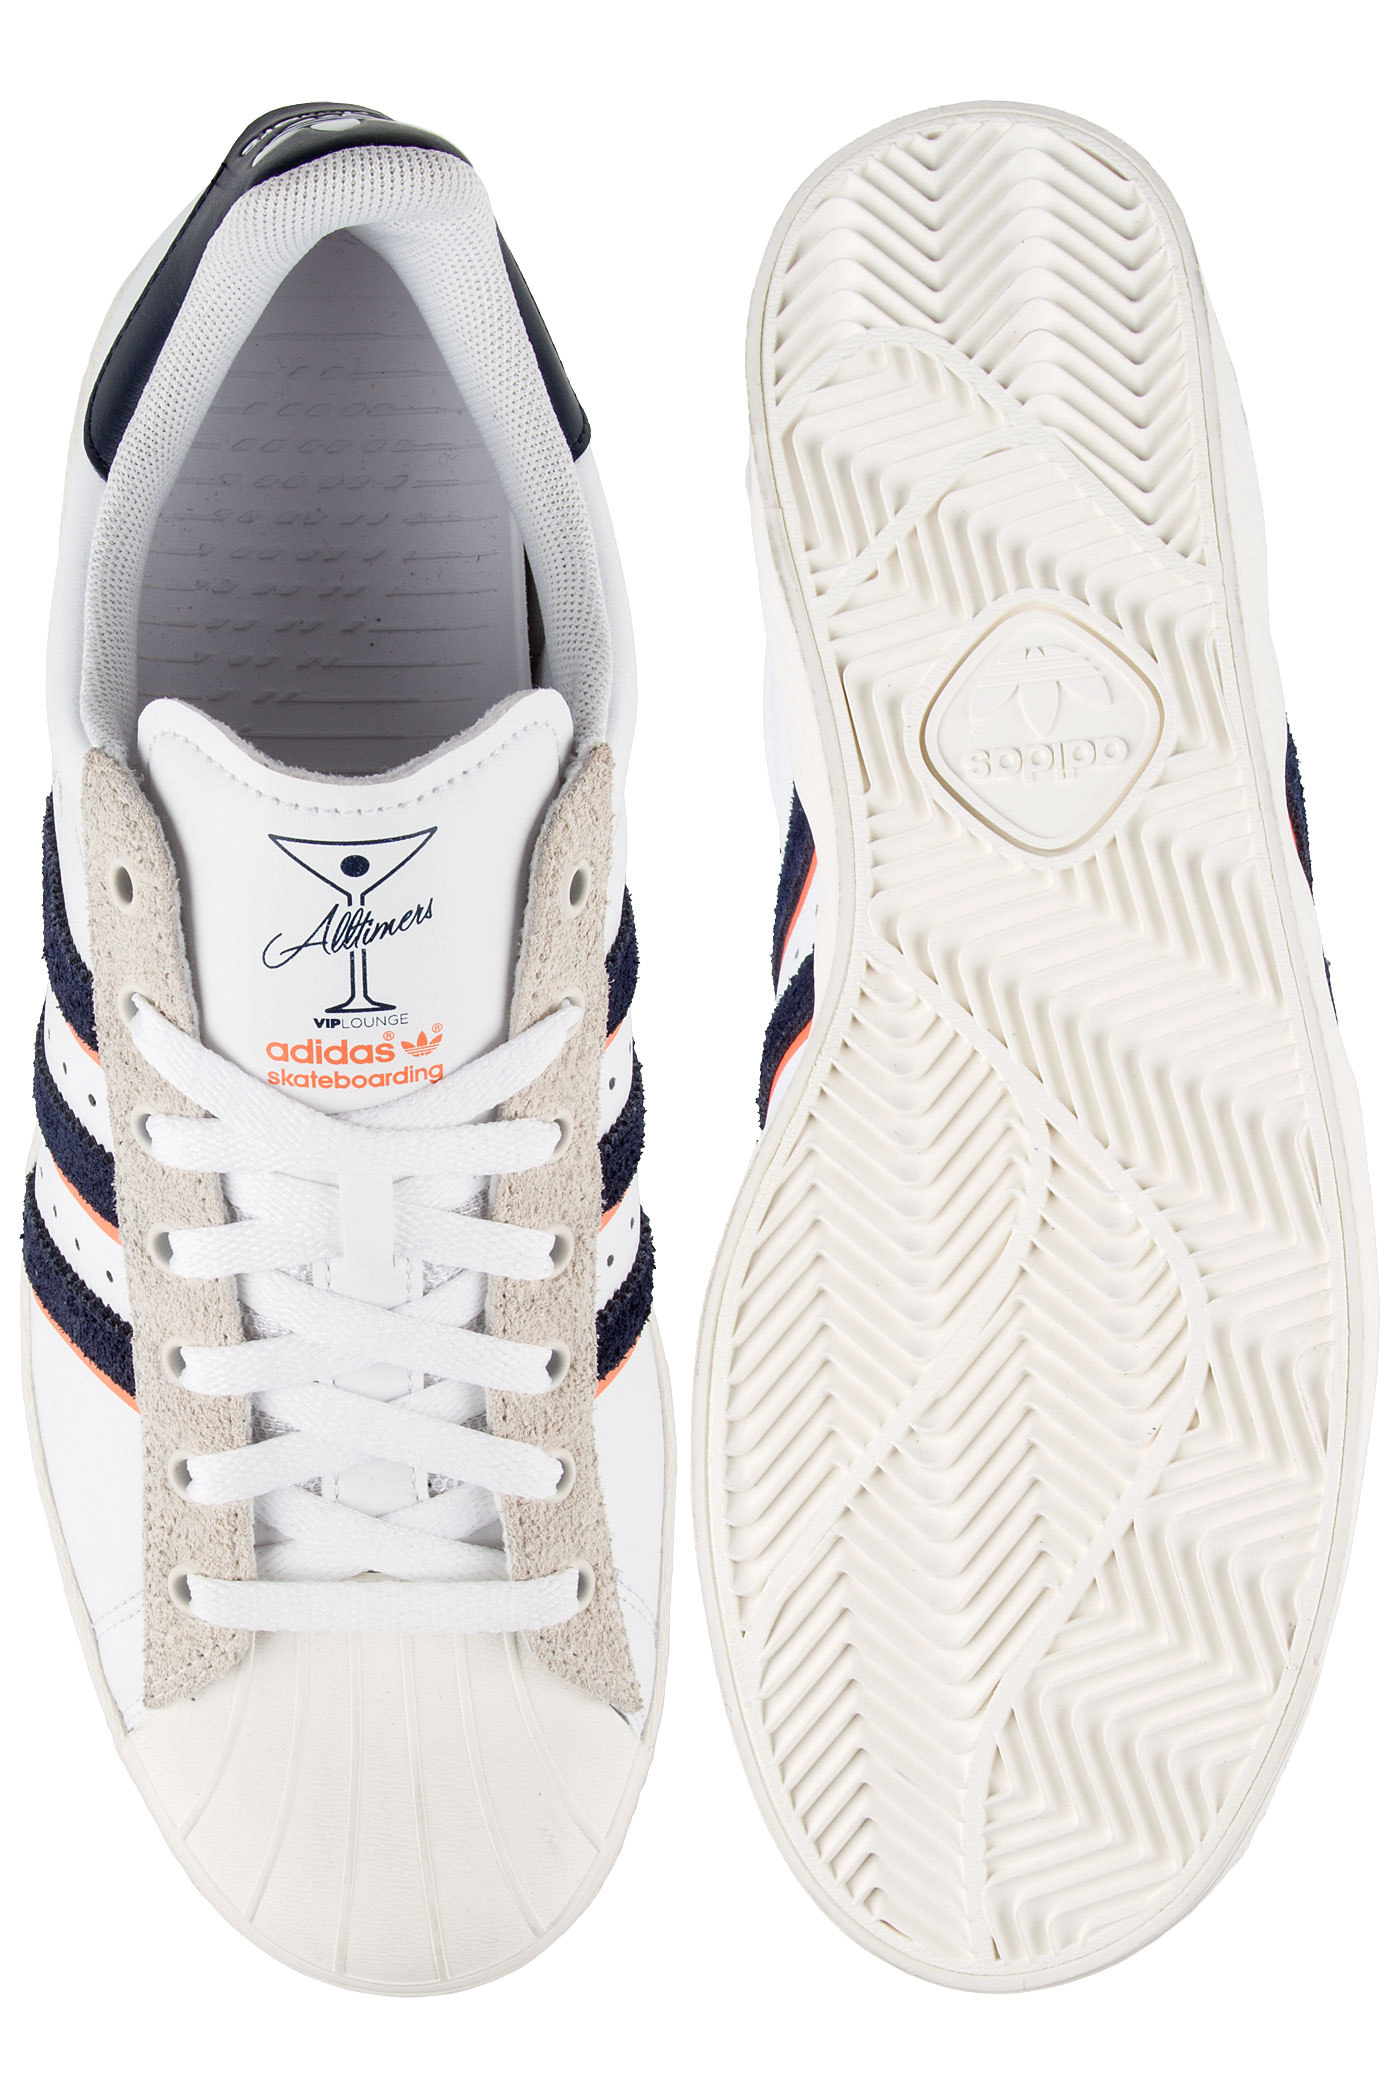 Cheap Adidas Superstar Vulc ADV Pastel Yellow Shoes at Zumiez: PDP